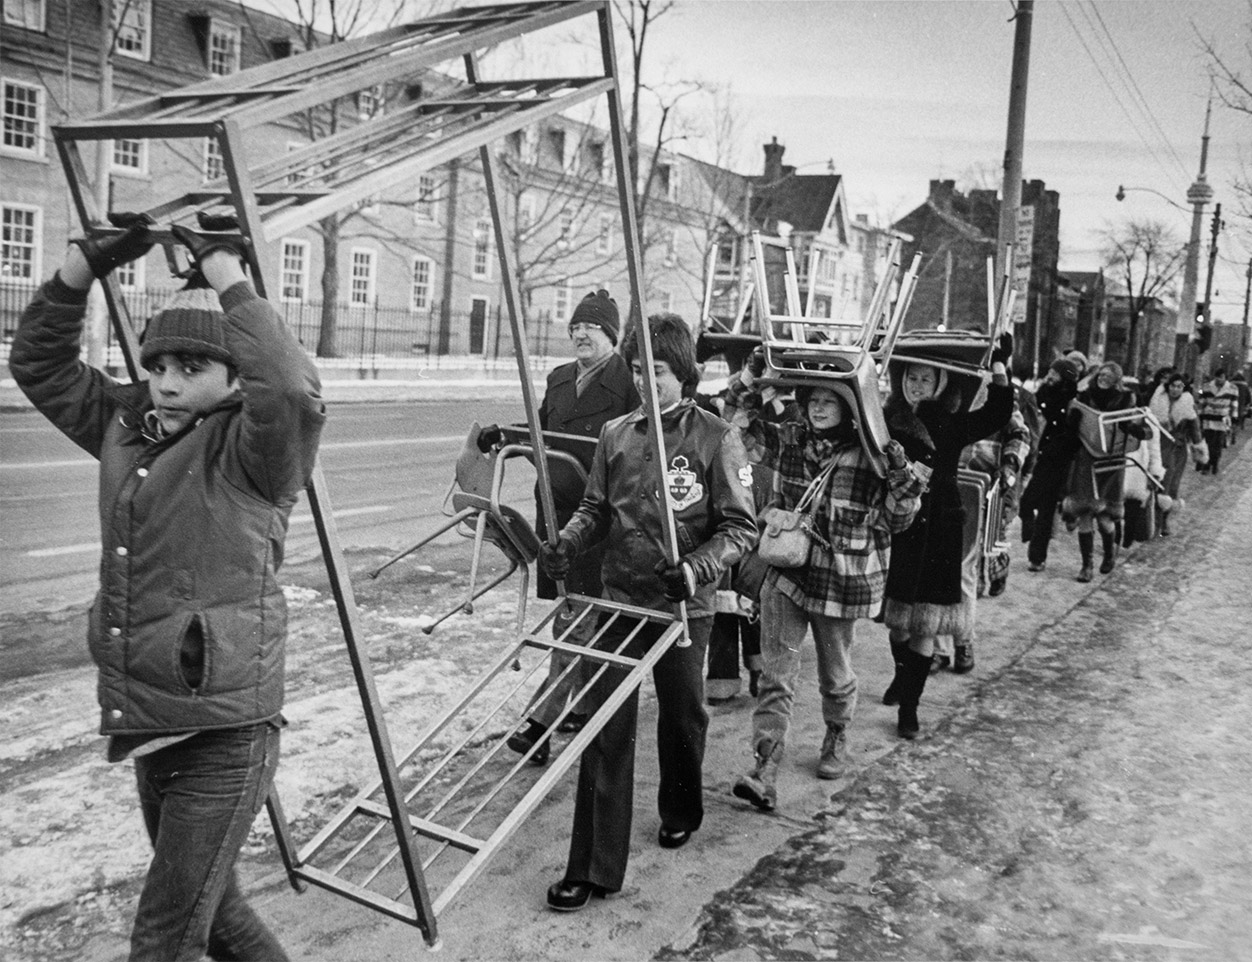 Black and white photo of students marching in line and carrying chairs. Two students upfront are carrying a metal rack.